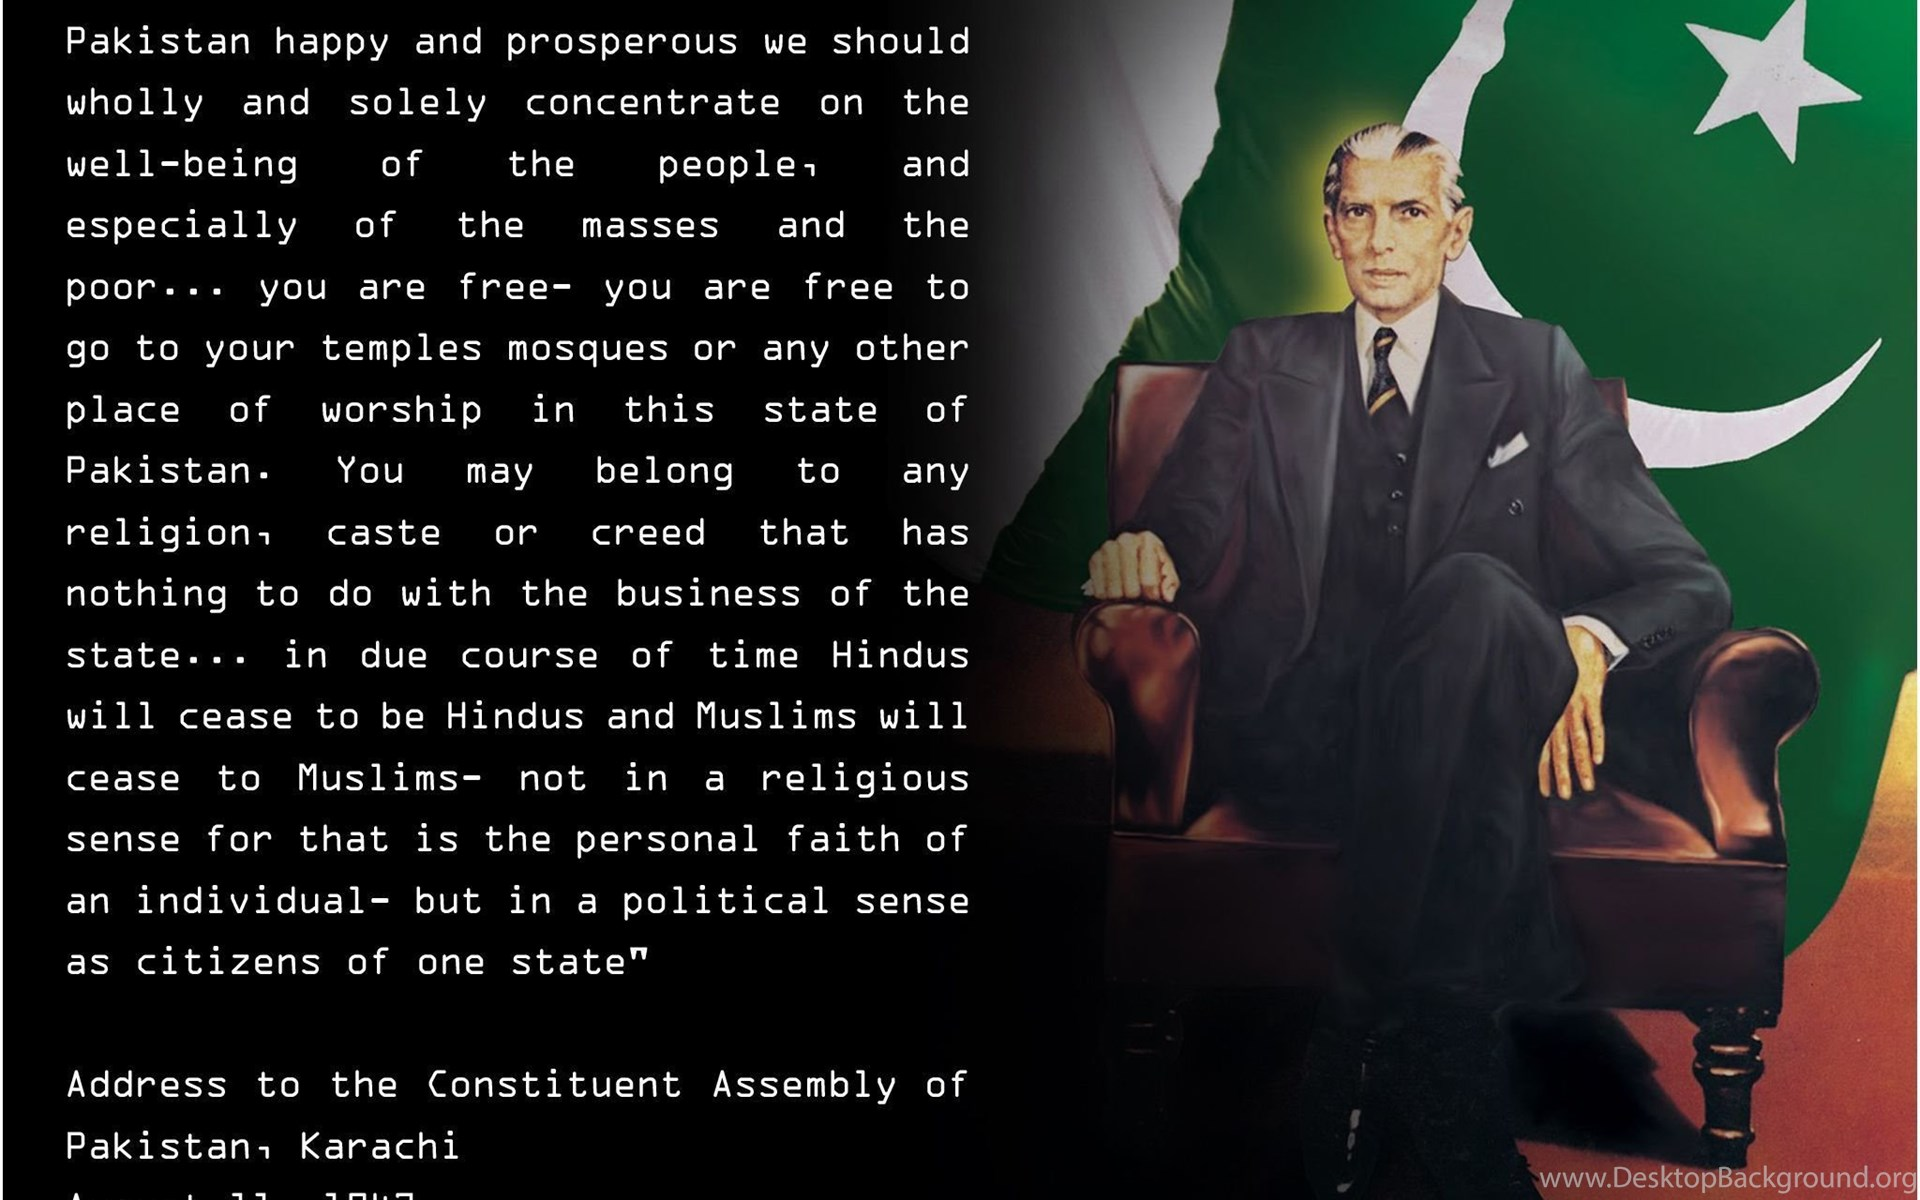 muhammad ali jinnah quotes essay Excerpt of a letter from allama iqbal to muhammad ali jinnah allama iqbal was an eminent politician who guided quaid-e-azam muhammad ali jinnah and was highly respected by him excerpt of a letter from.